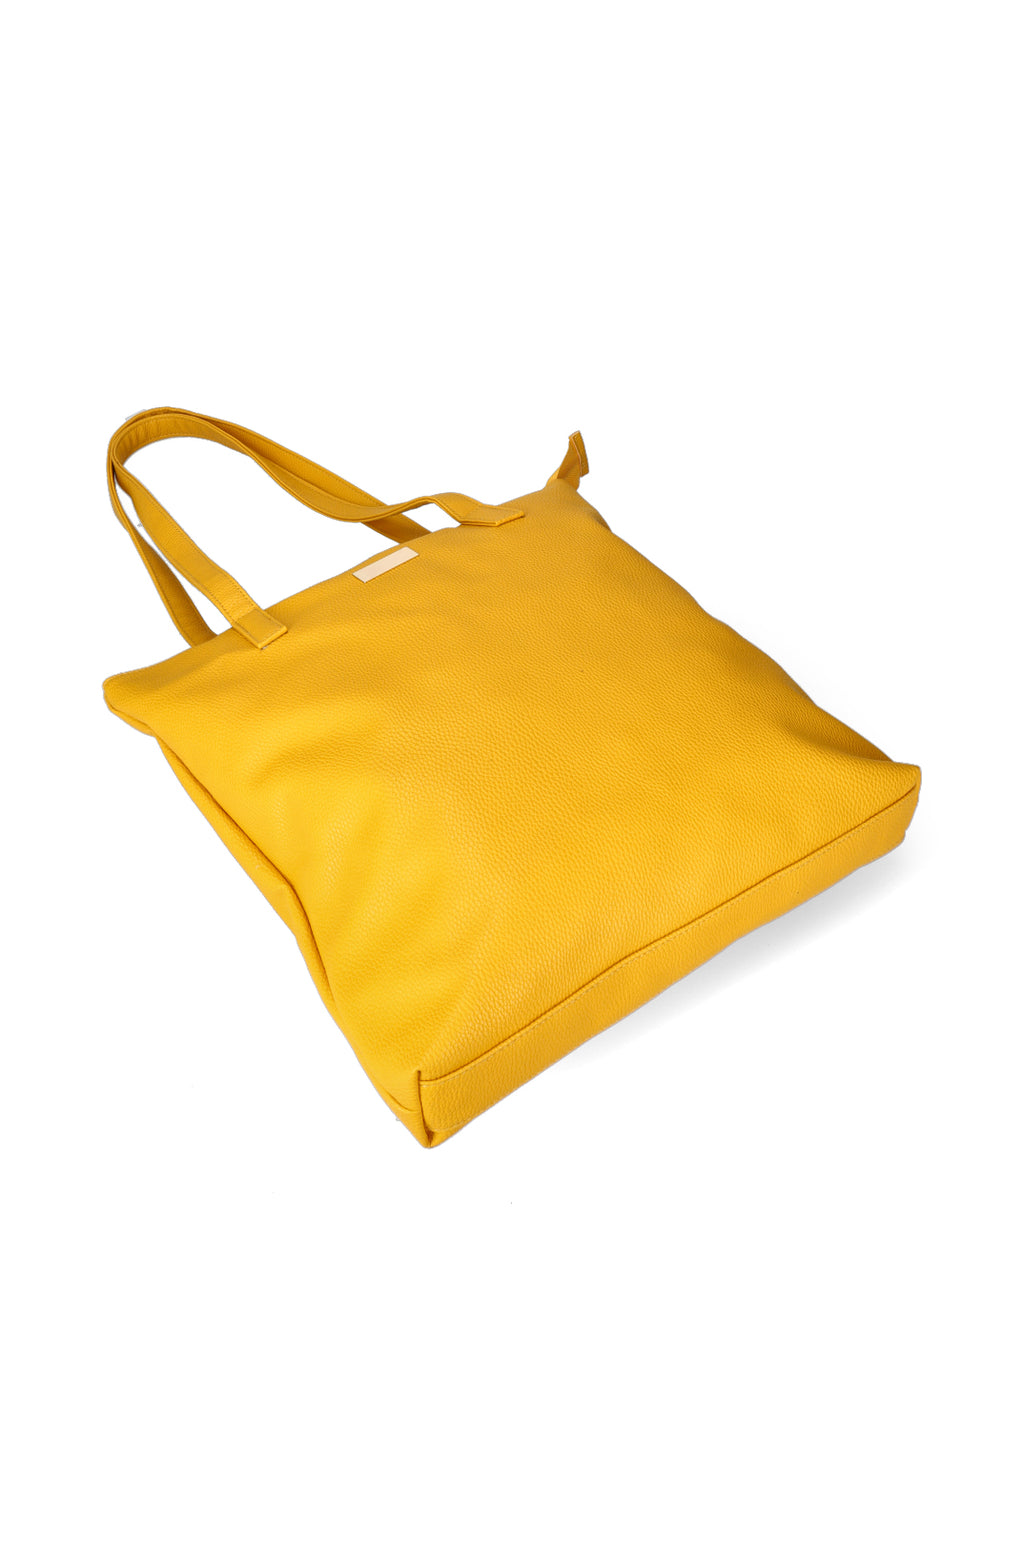 Heather Shopper Handbag _ 120291 _ Mustard